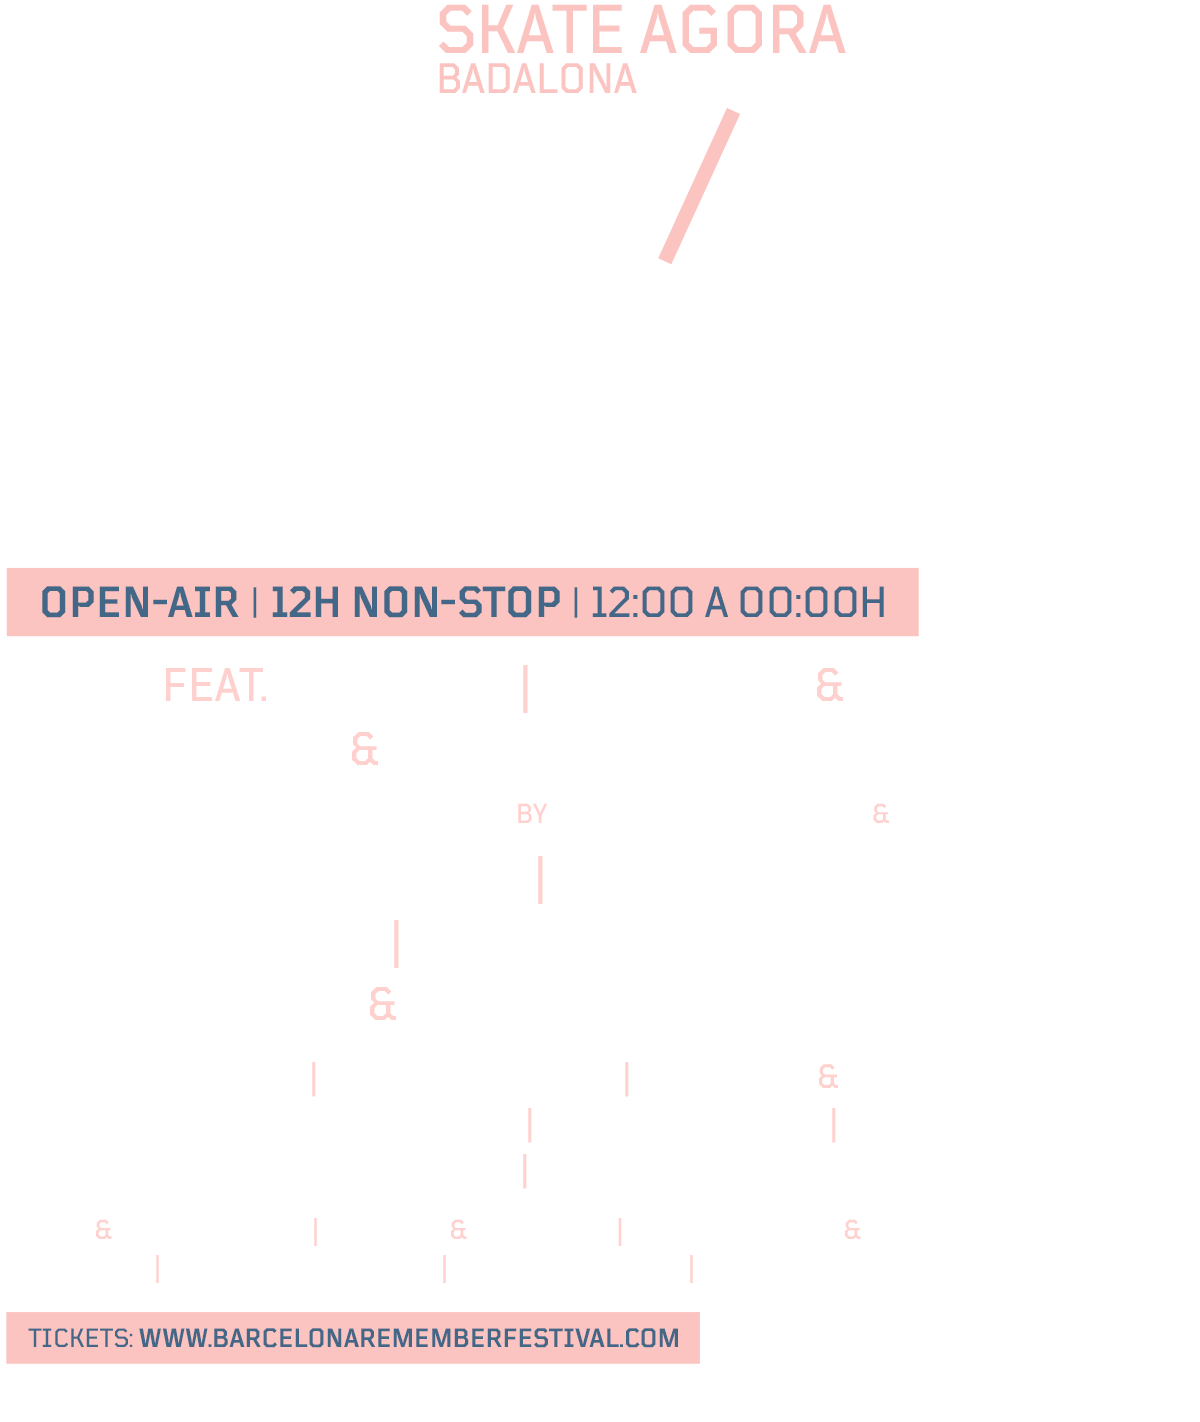 Barcelona Remember Festival